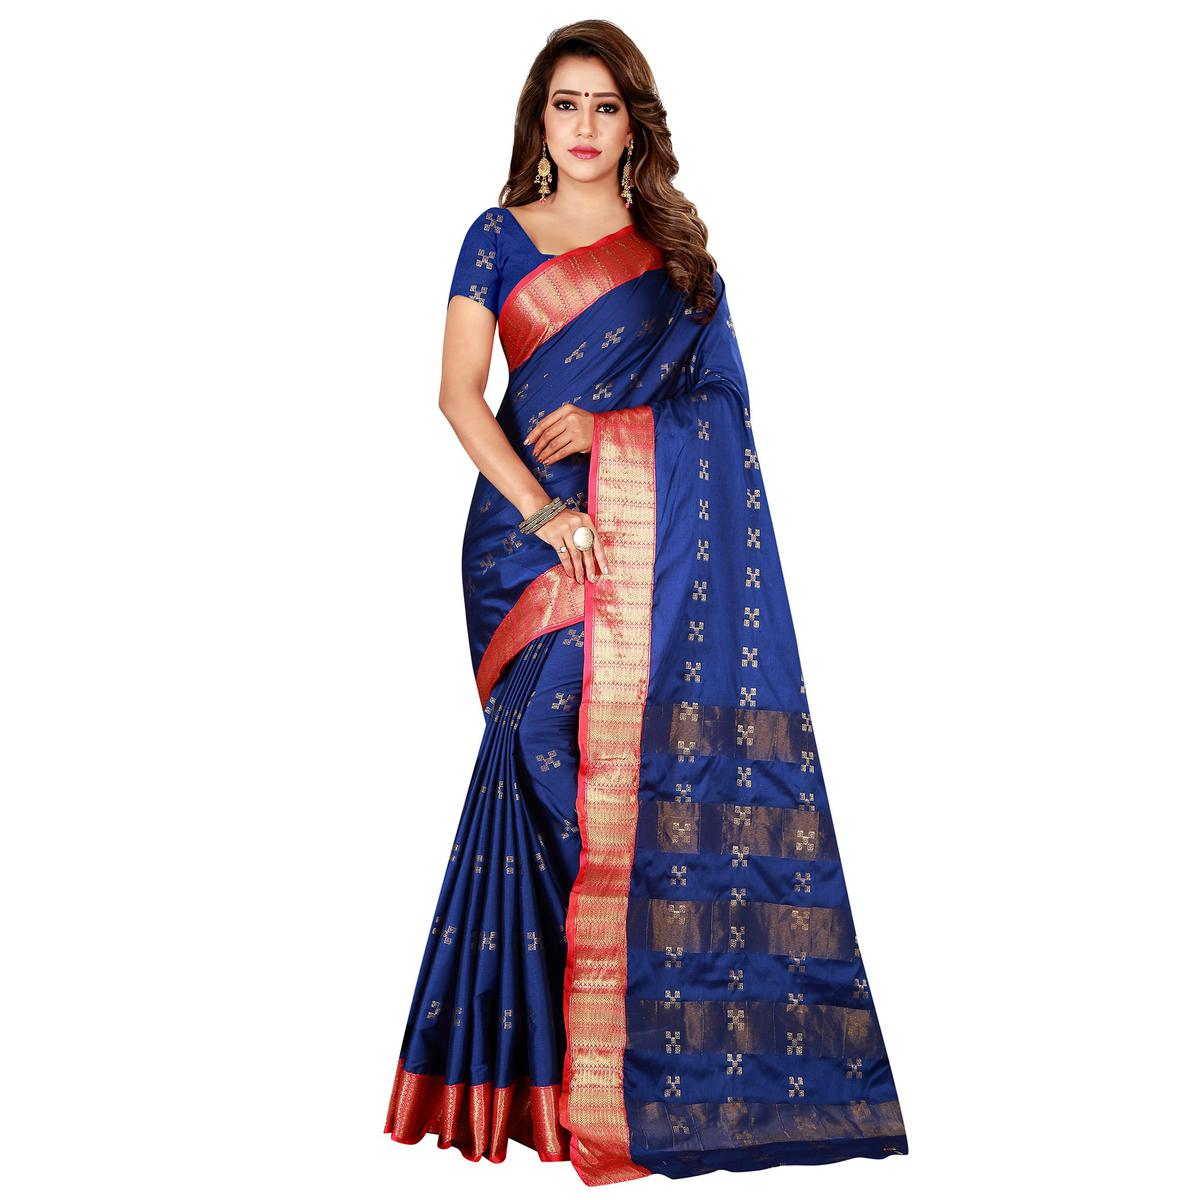 Exotic Navy Blue Colored Festive Wear Woven Cotton Silk Saree